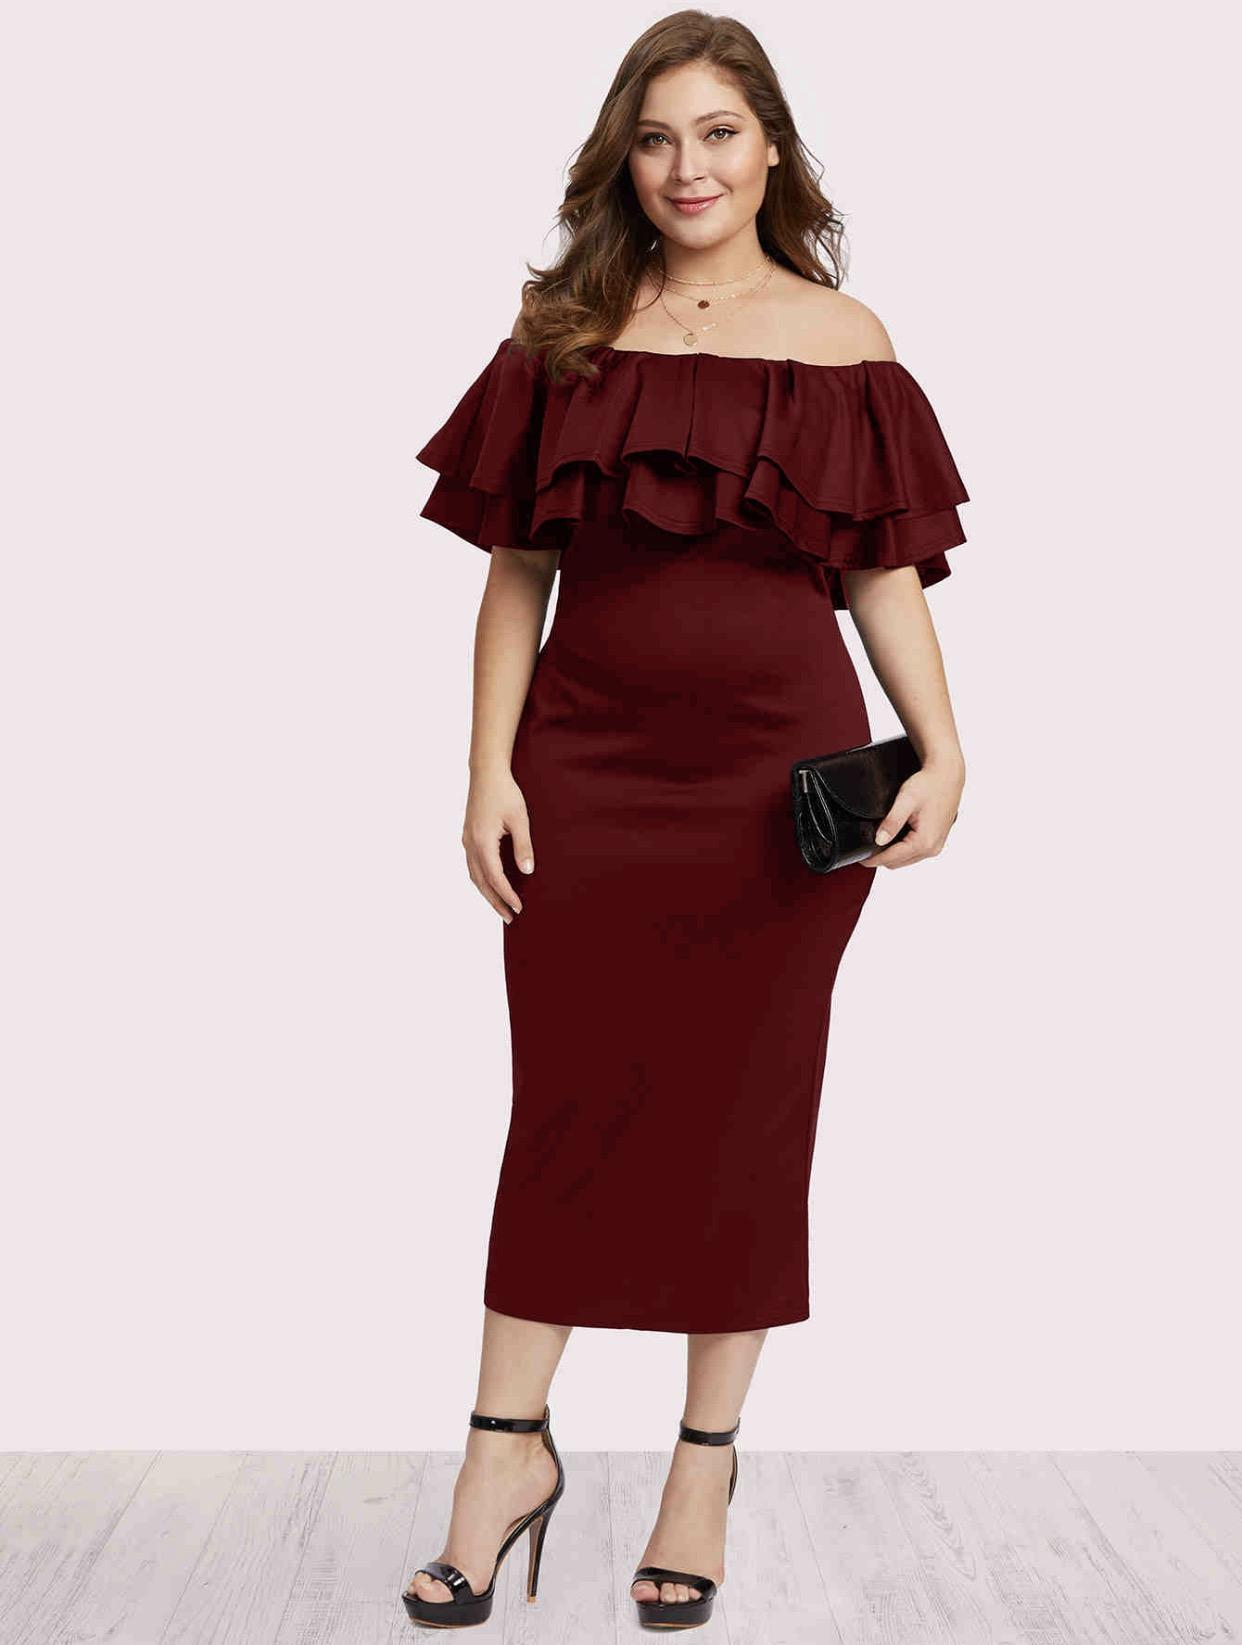 129e2cabb Plus Size Dresses for sale - Plus Size Maxi Dress Online Deals ...